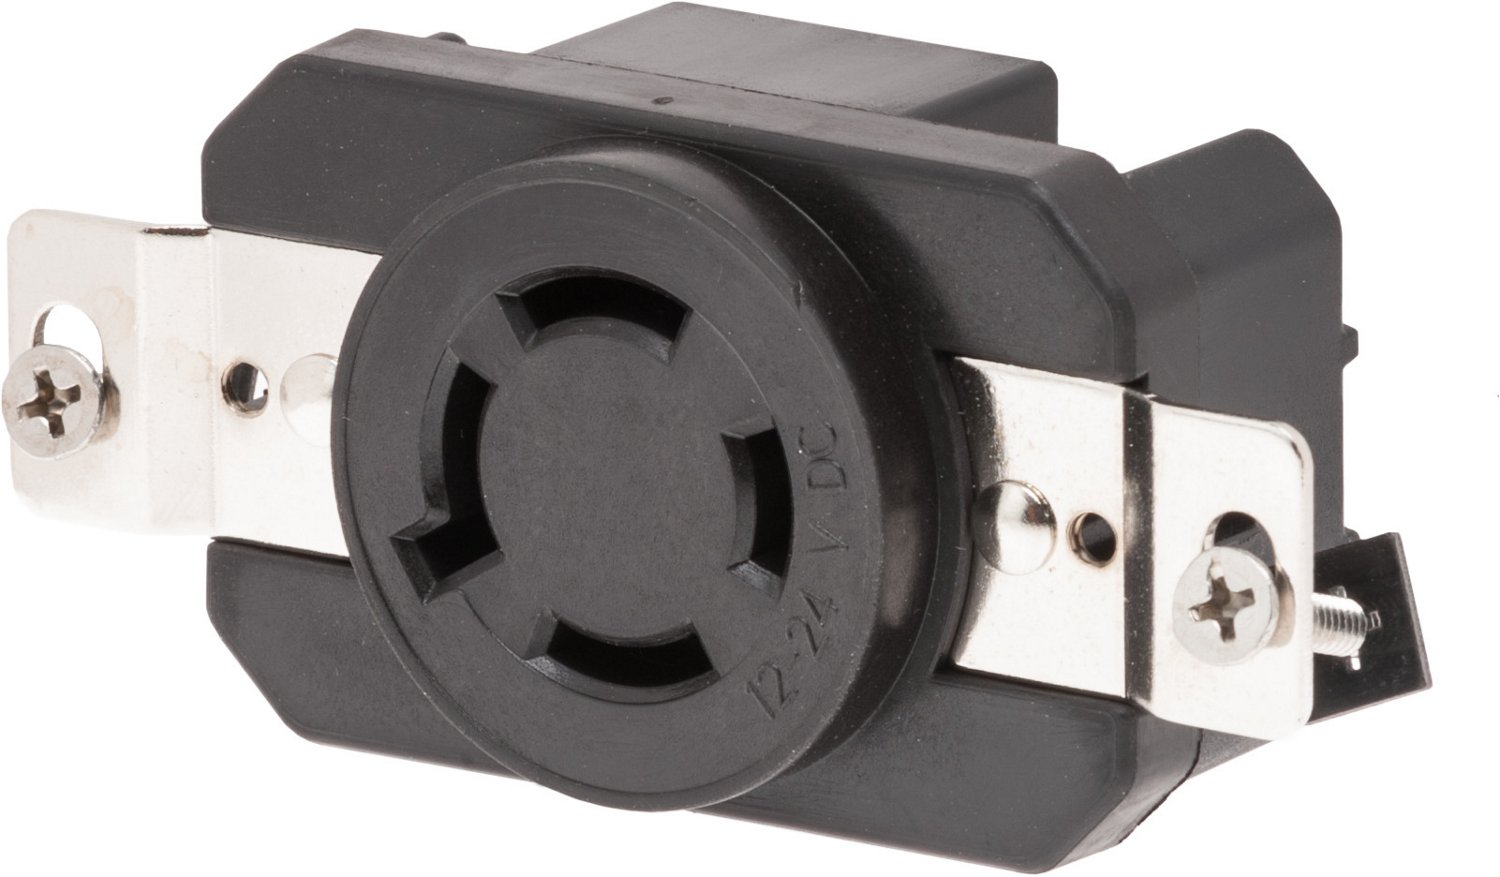 display product reviews for marine raider 4-prong female trolling motor  receptacle